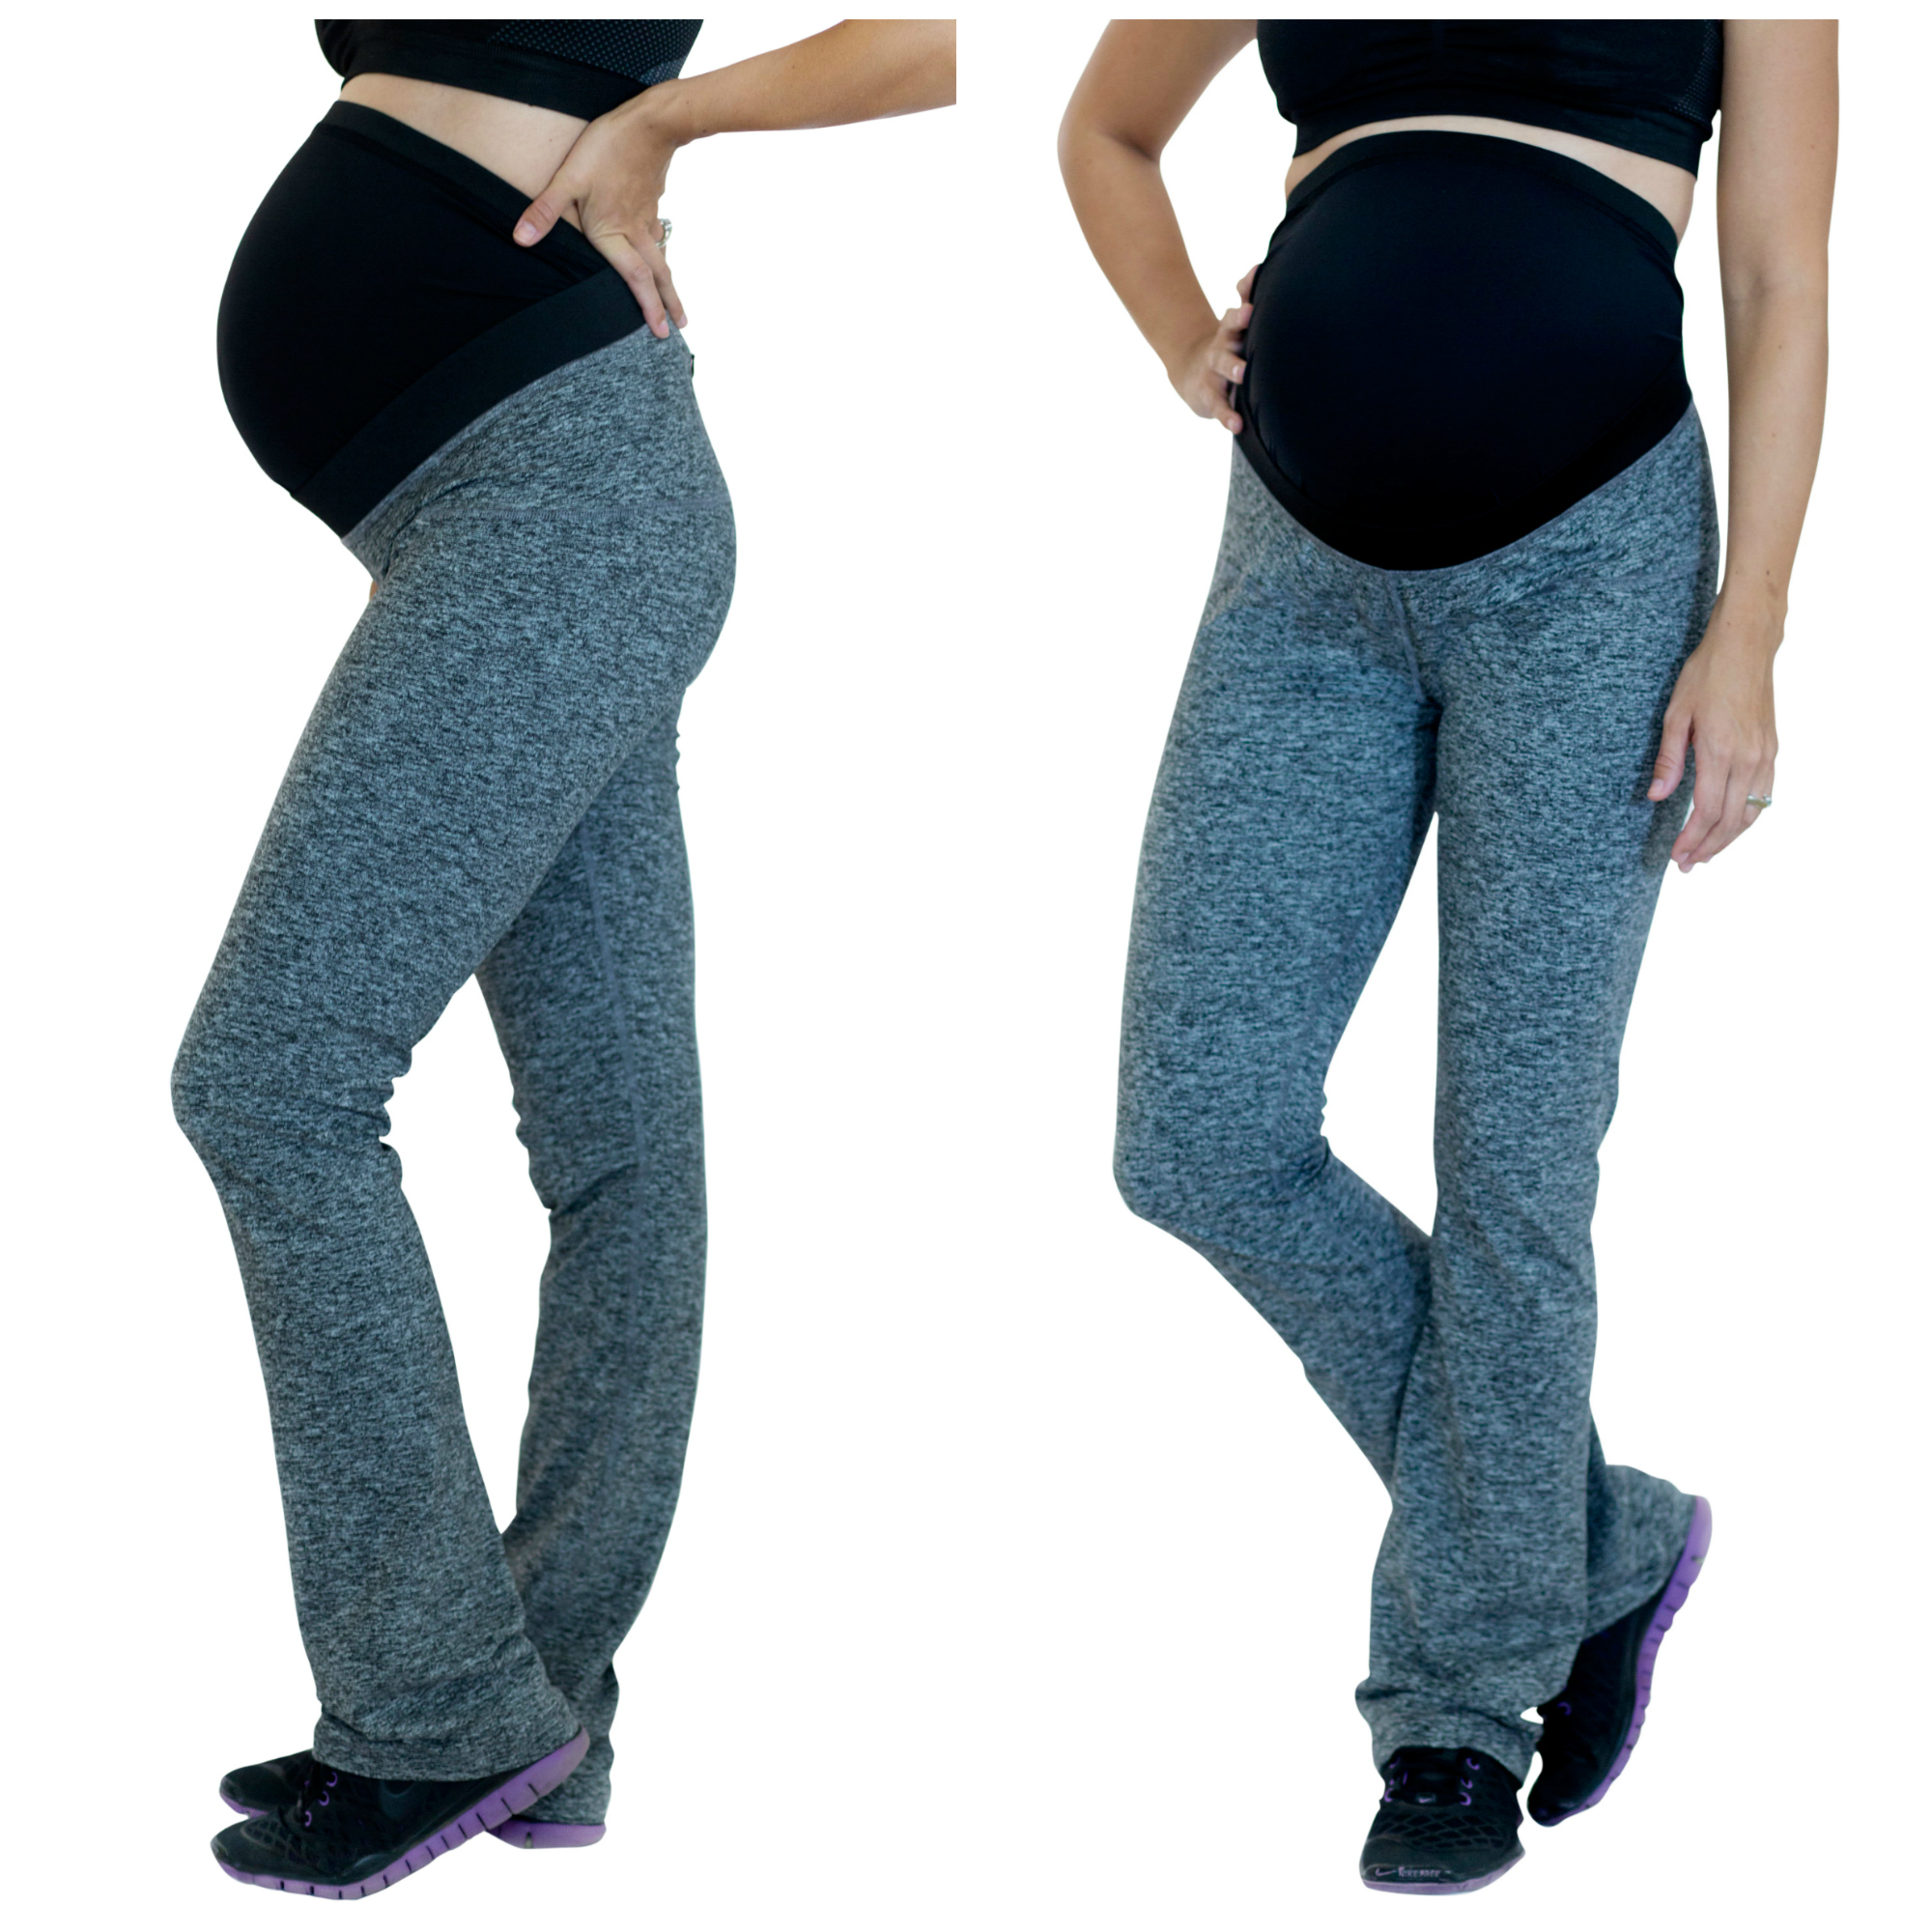 Mumberry Maternity Yoga Pants With Belly Support Band